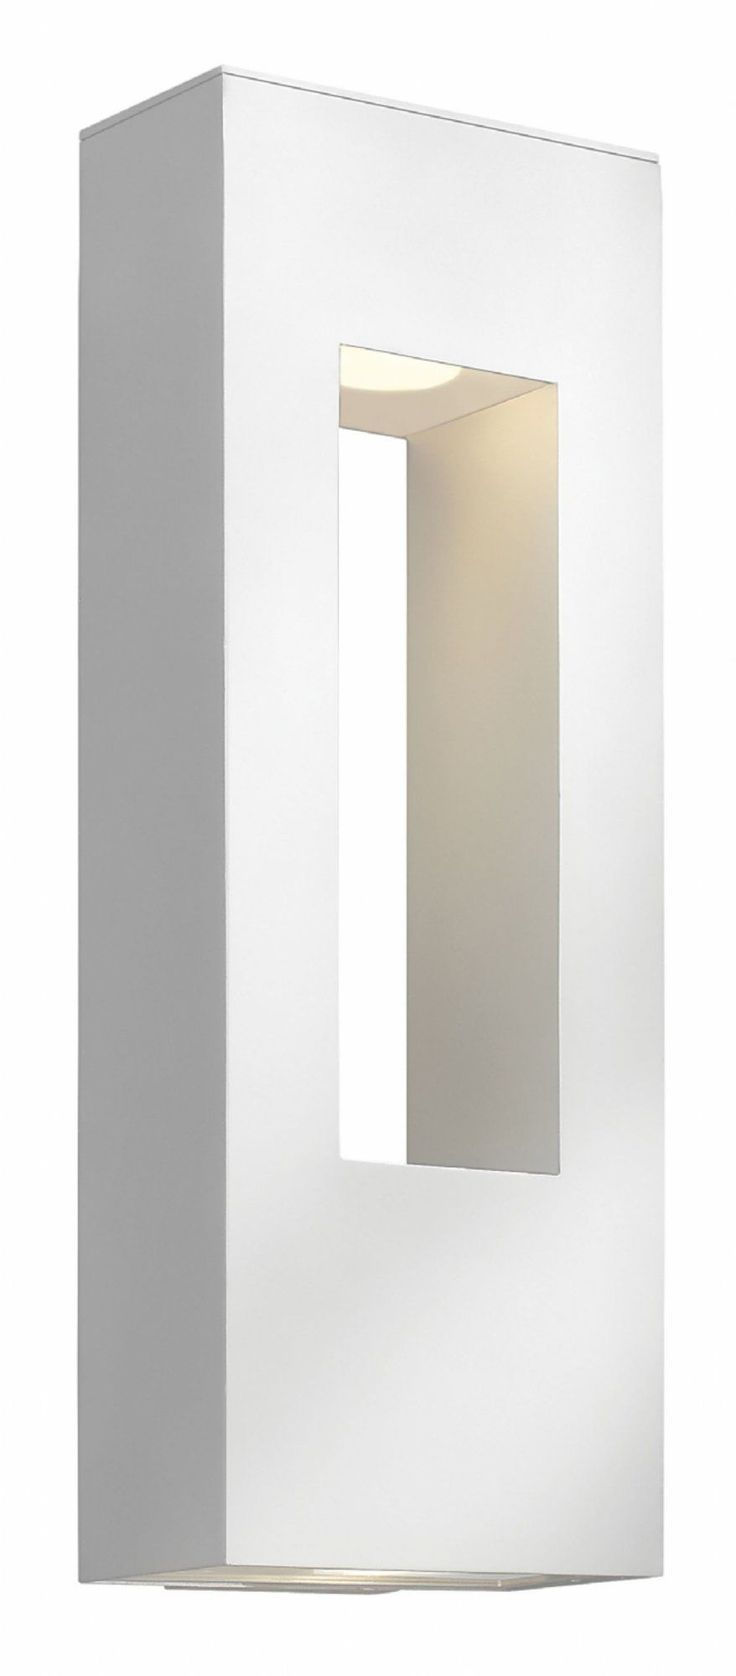 Wac lighting hr hl 4 low voltage new construction housing recessed can light - Hinkley Lighting Carries Many Titanium Atlantis Exterior Wall Mount Light Fixtures That Can Be Used To Enhance The Appearance And Lighting Of Any Home